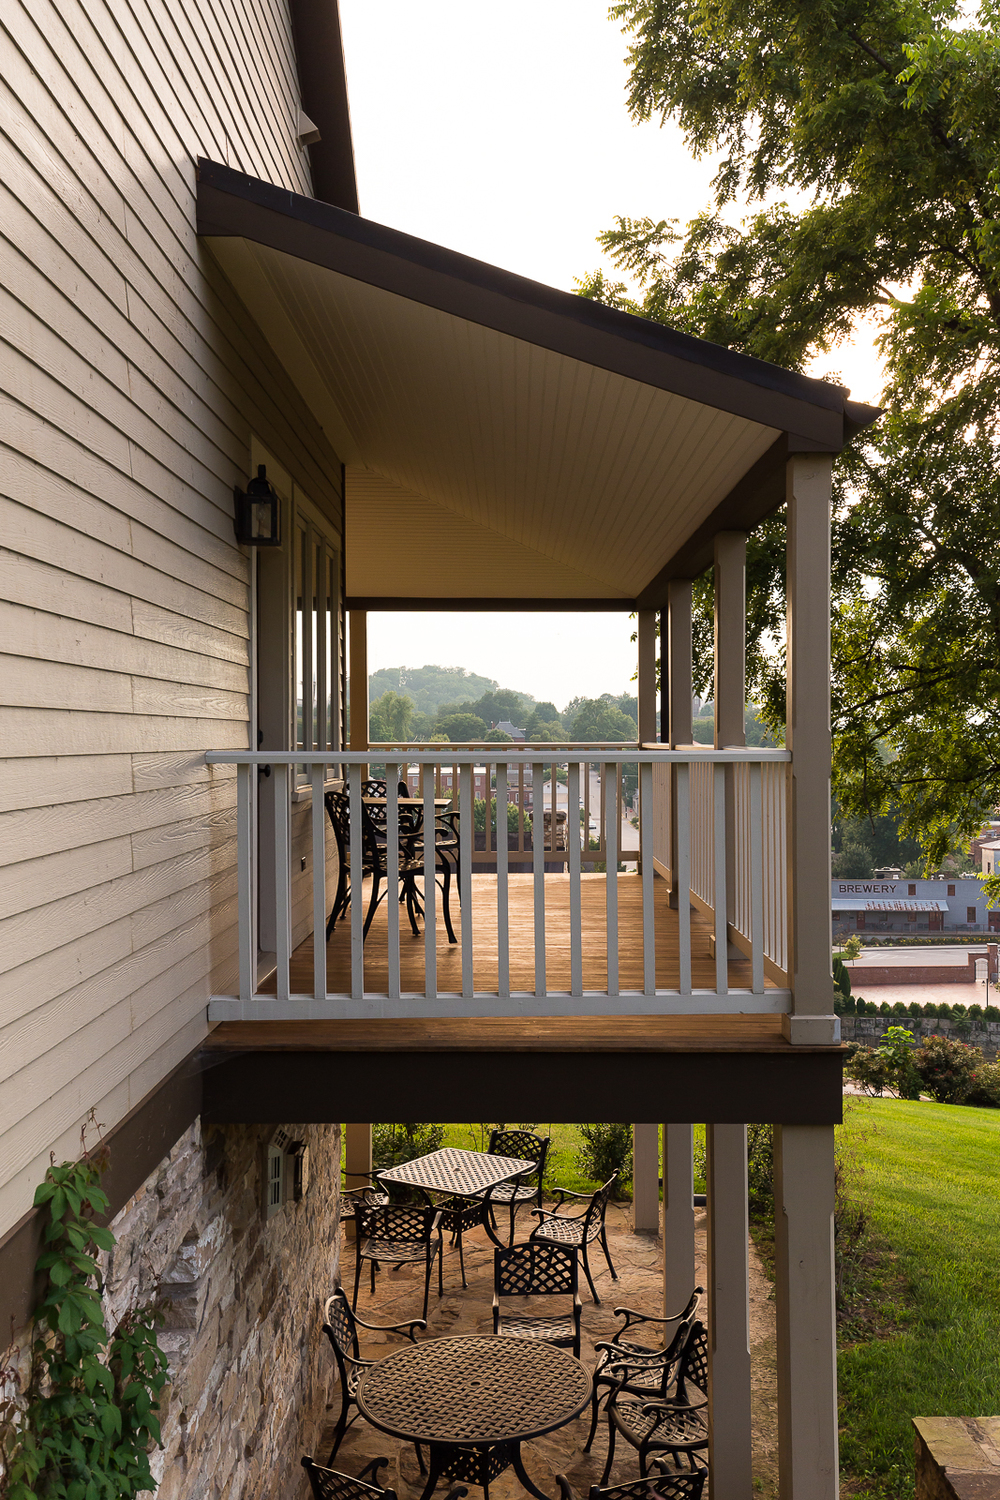 Some cottages have balconies with beautiful views of Hermann.